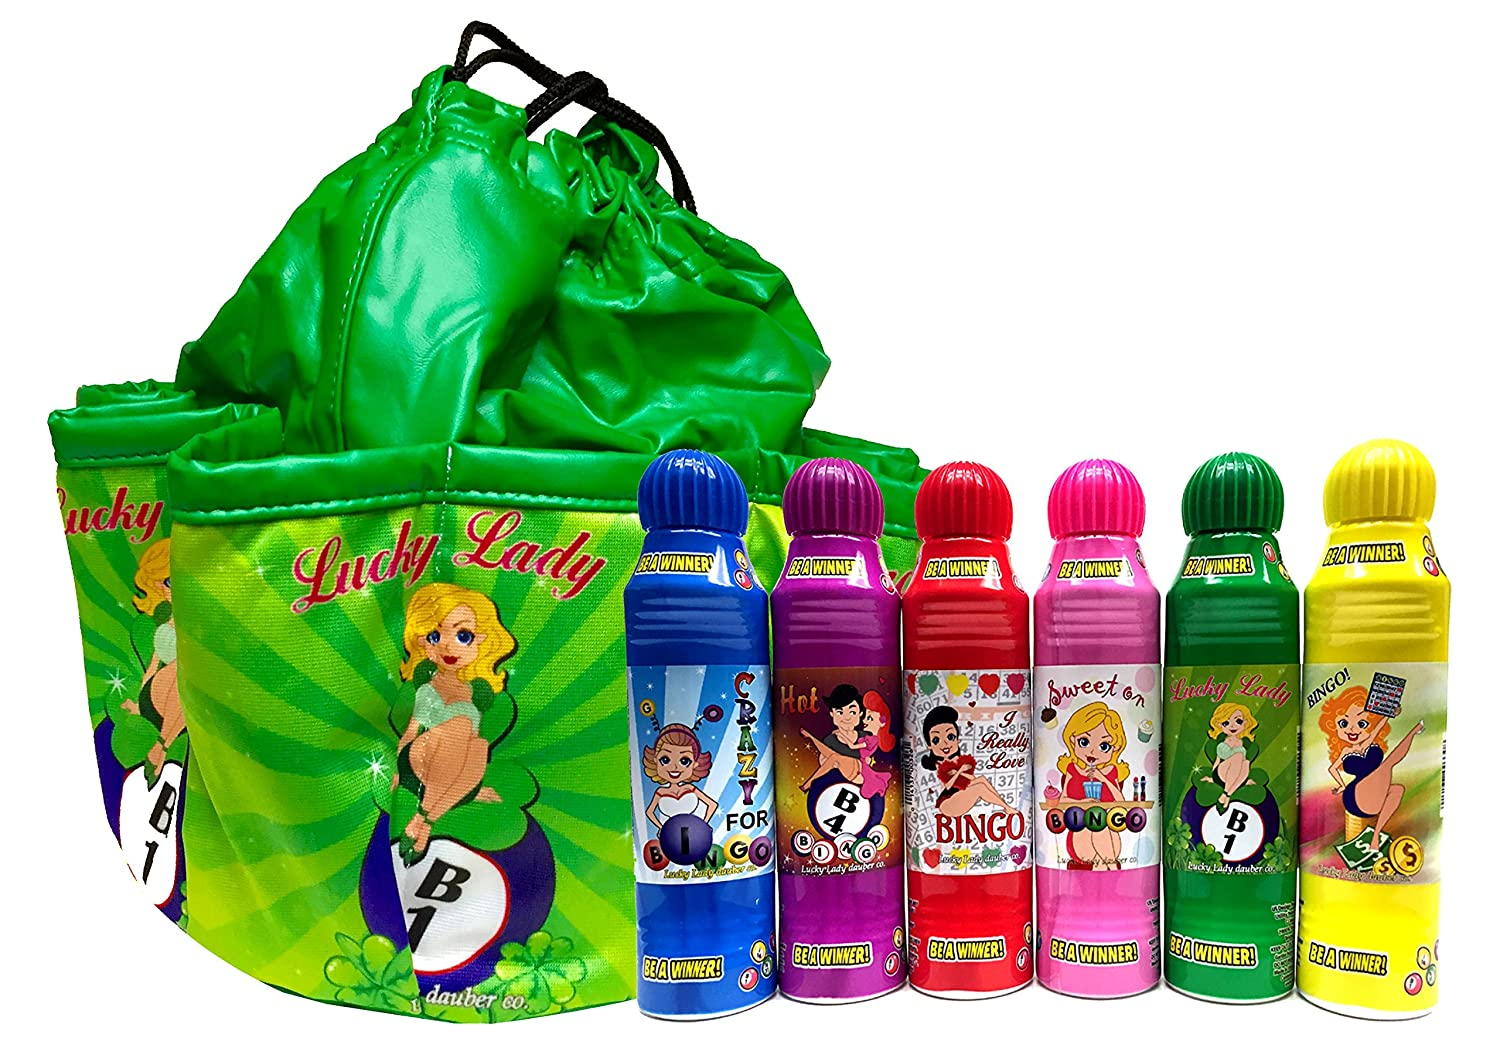 Lucky Lady Green Bingo Bag B1 with 6 Pack of Lucky Lady Dab-O-Ink Bingo Daubers Bonus!! Lucky Lady